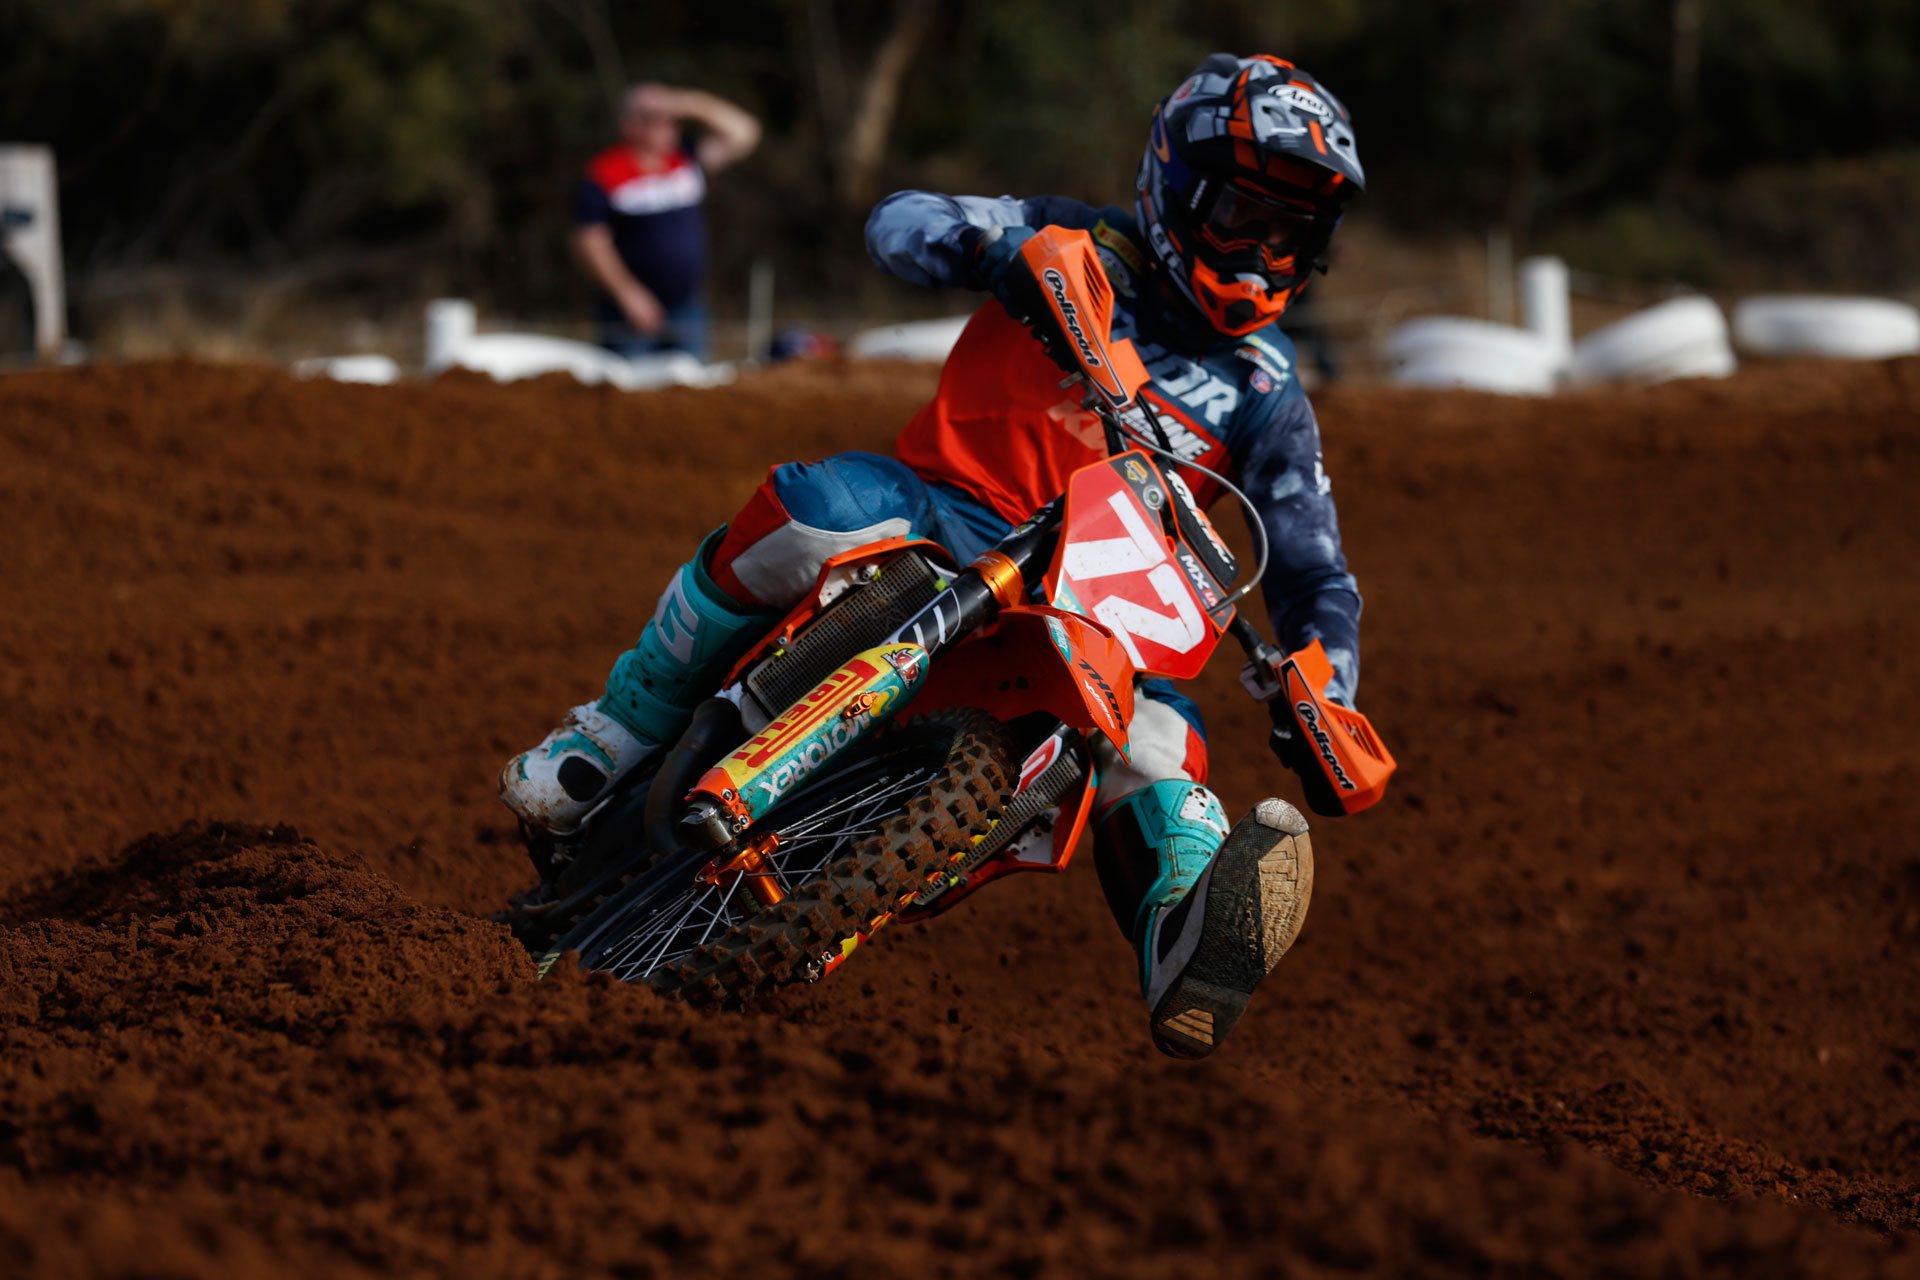 MXN Rnd Murray Bridge MXD Regan Duffy